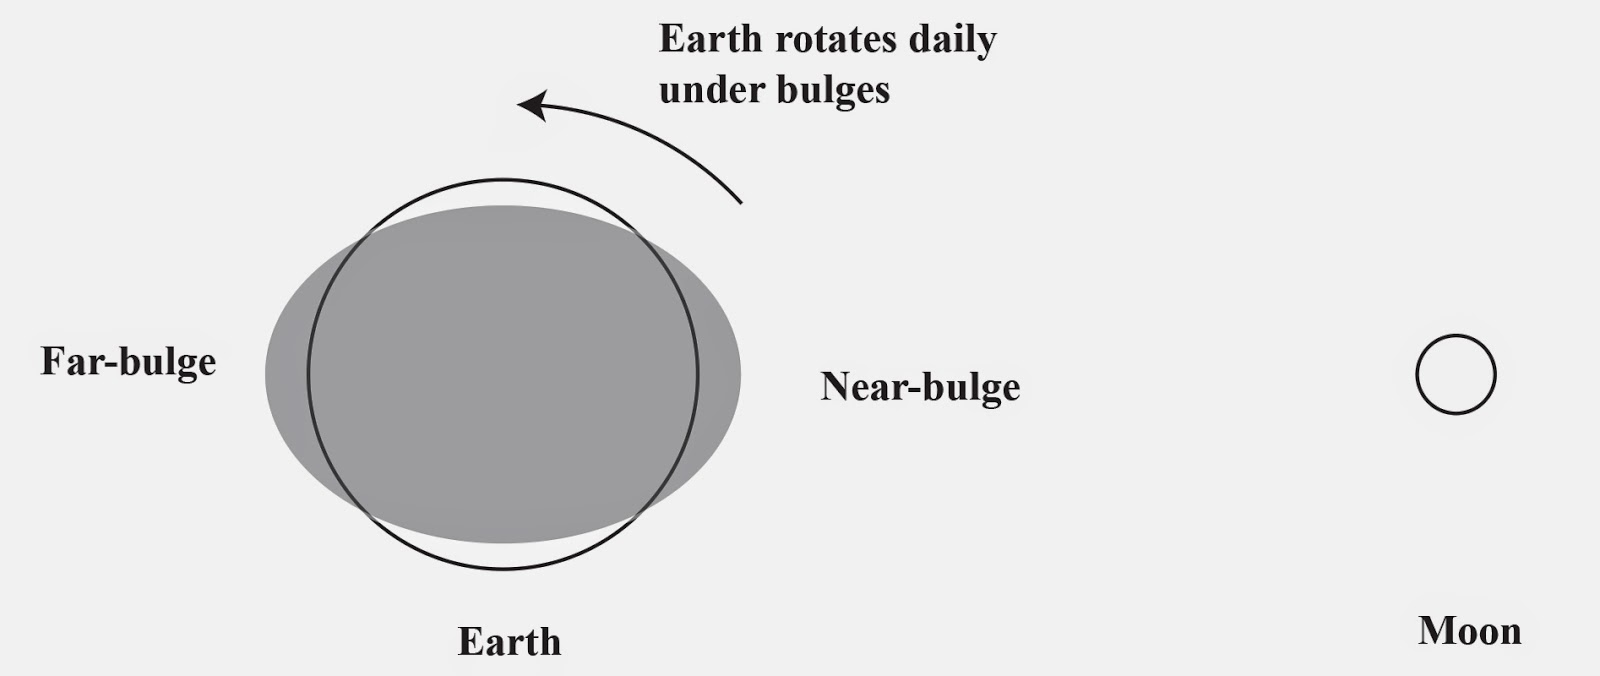 The art of wayfinding october 2014 figure 2 the residual tidal forces are symmetric and cause a near side and far side bulge that the earth rotates under daily nvjuhfo Image collections